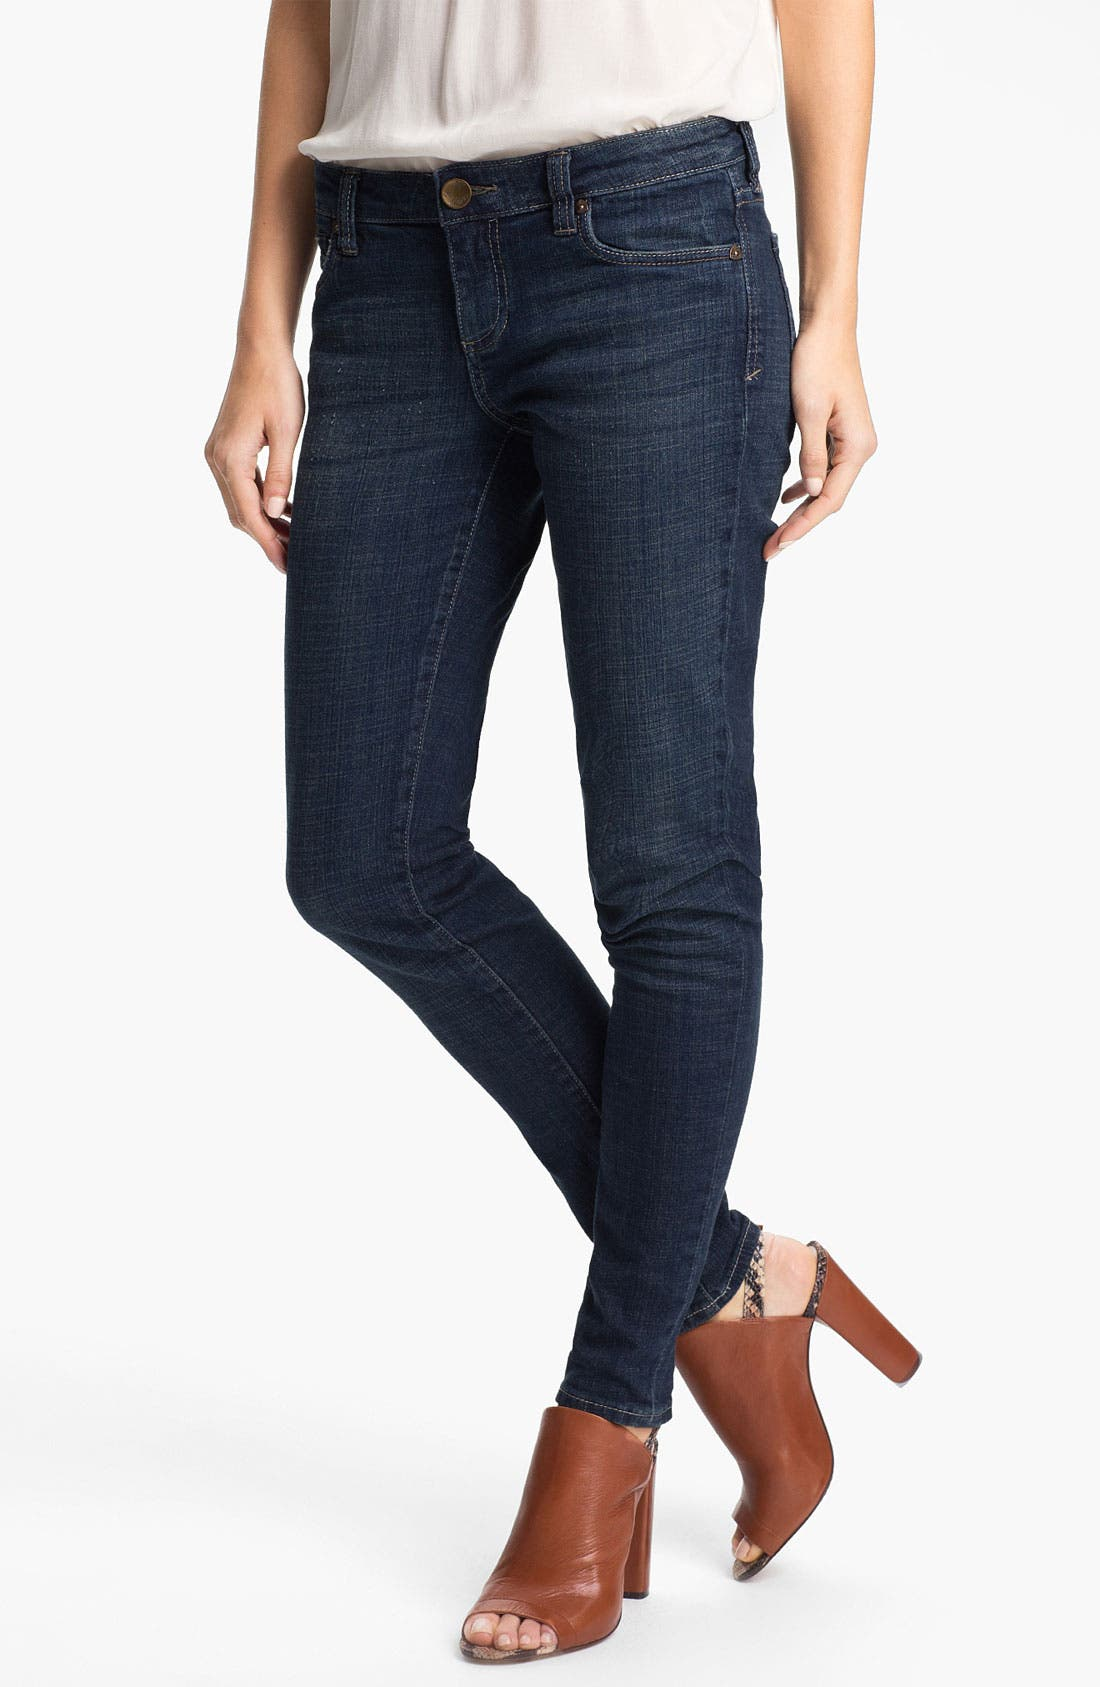 Alternate Image 1 Selected - KUT from the Kloth 'Mia' Toothpick Jeans (Natural)